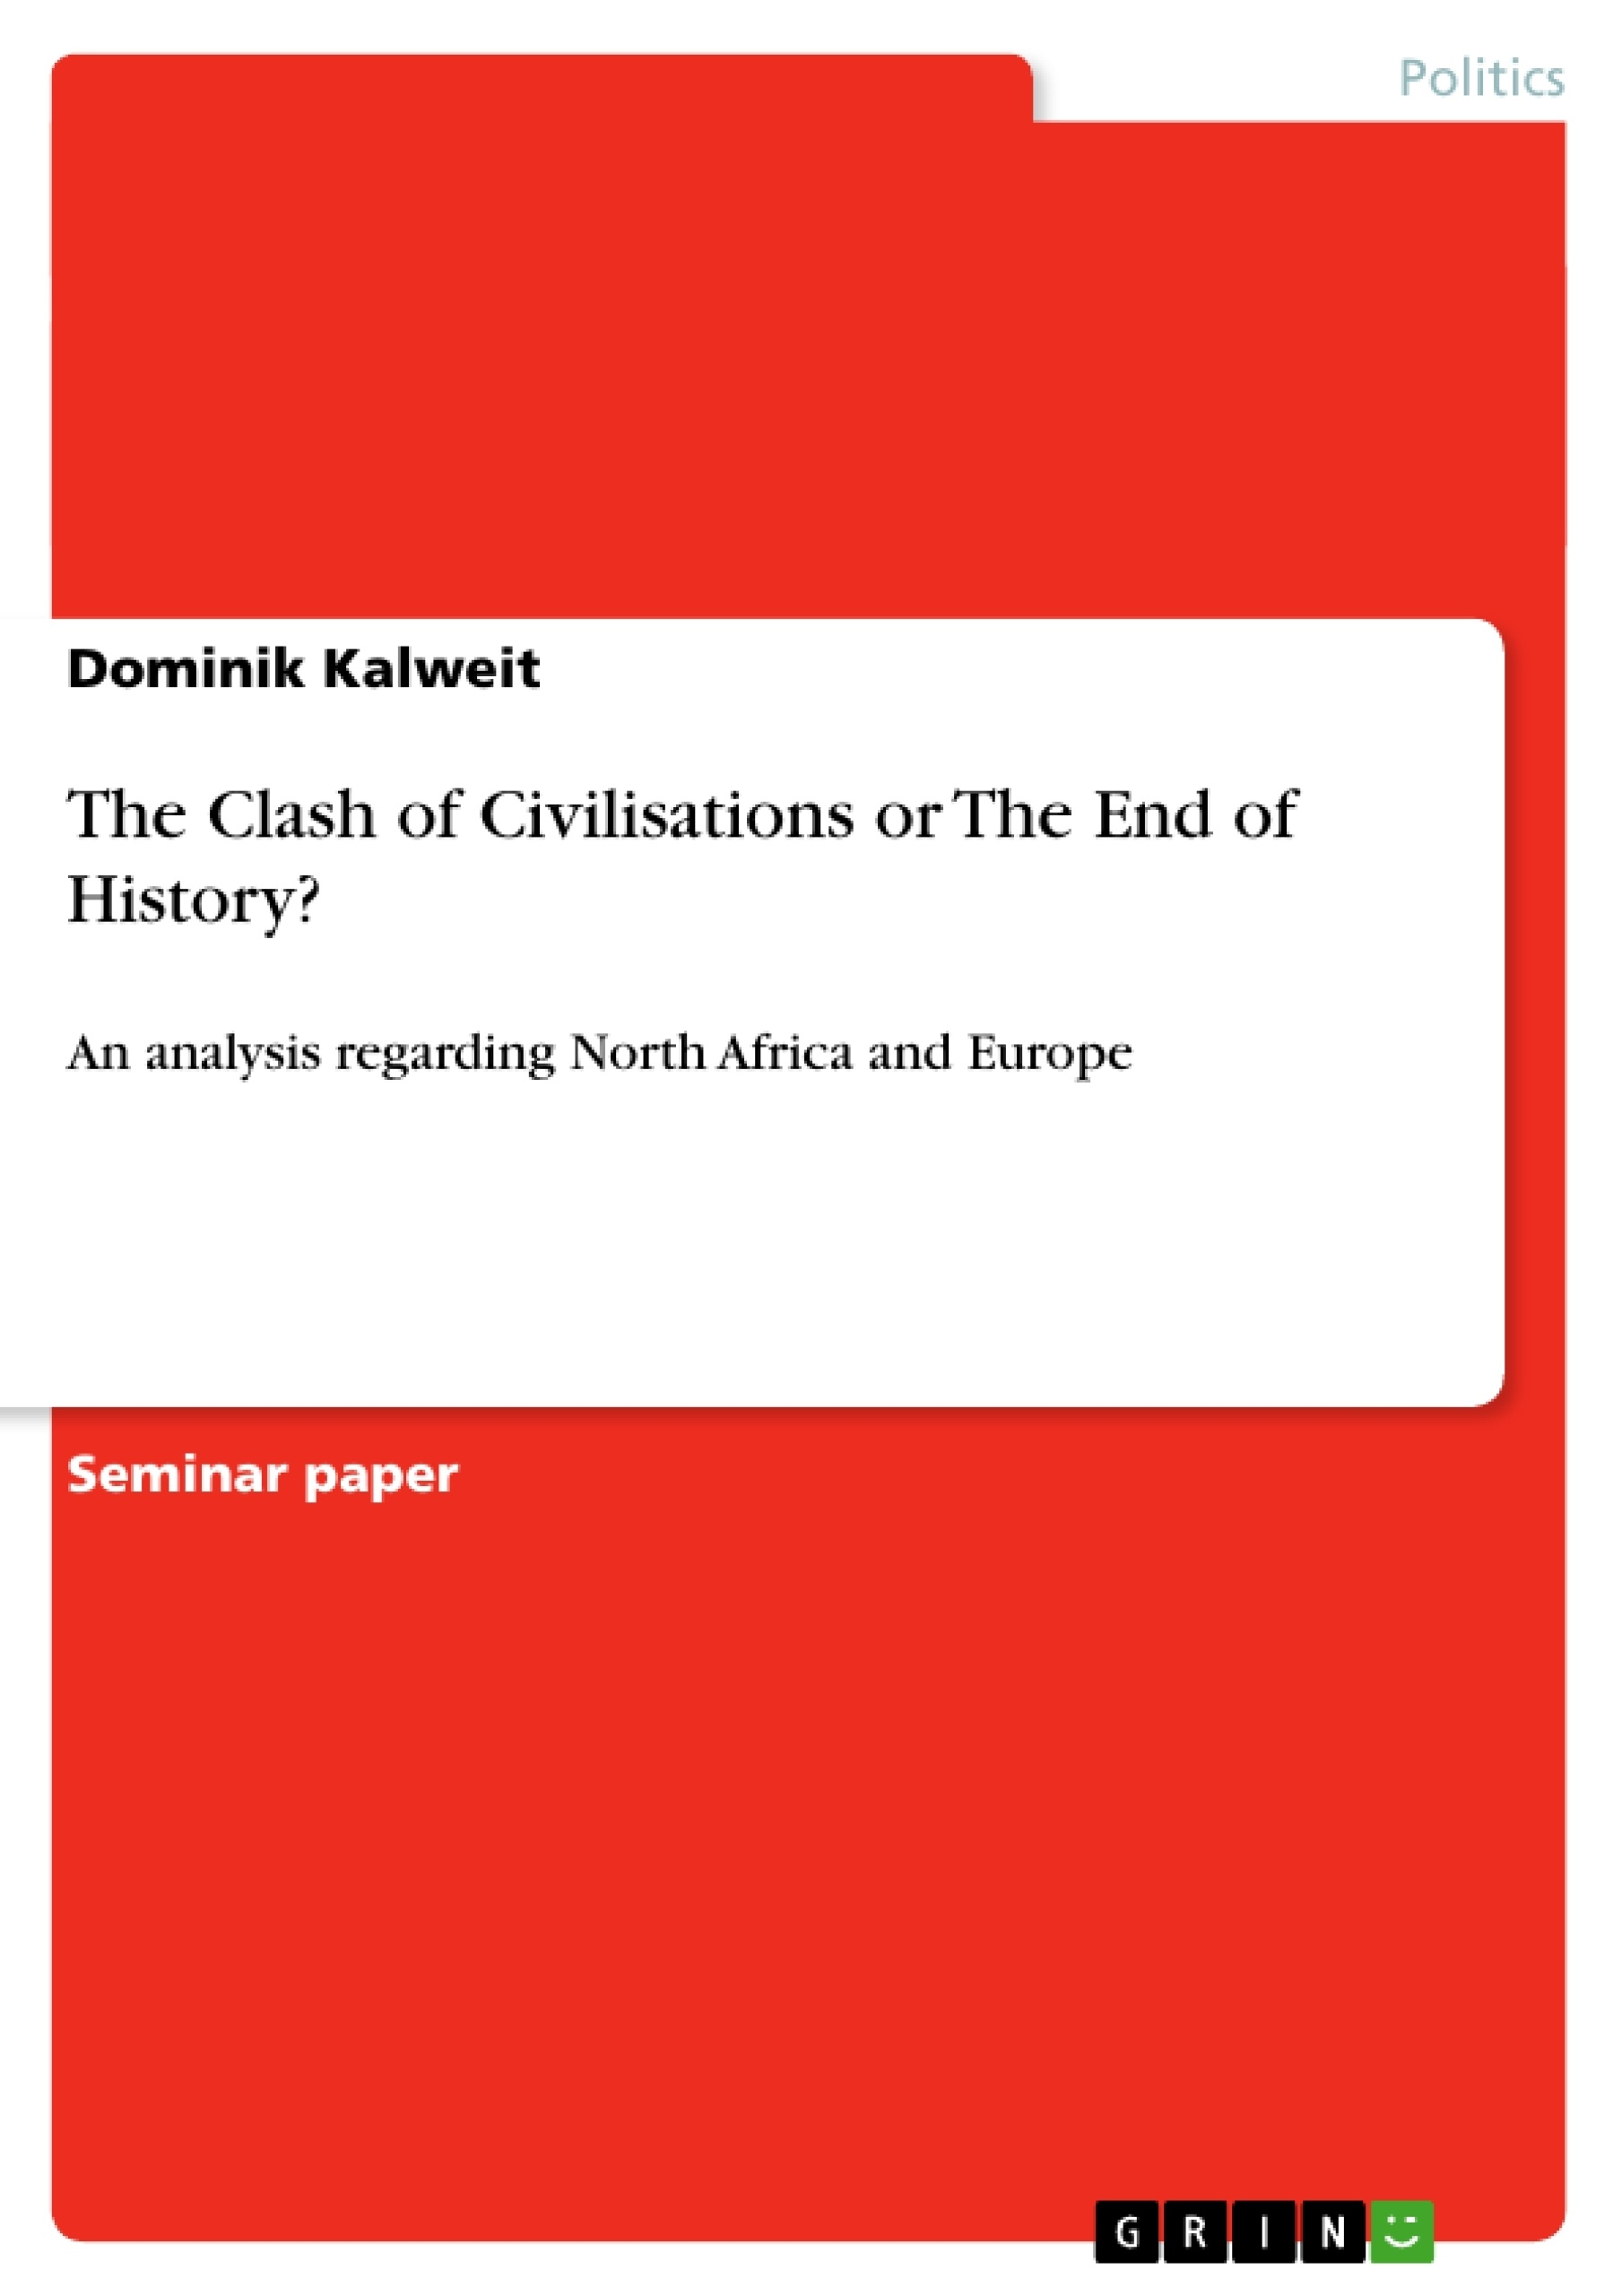 Title: The Clash of Civilisations or The End of History?